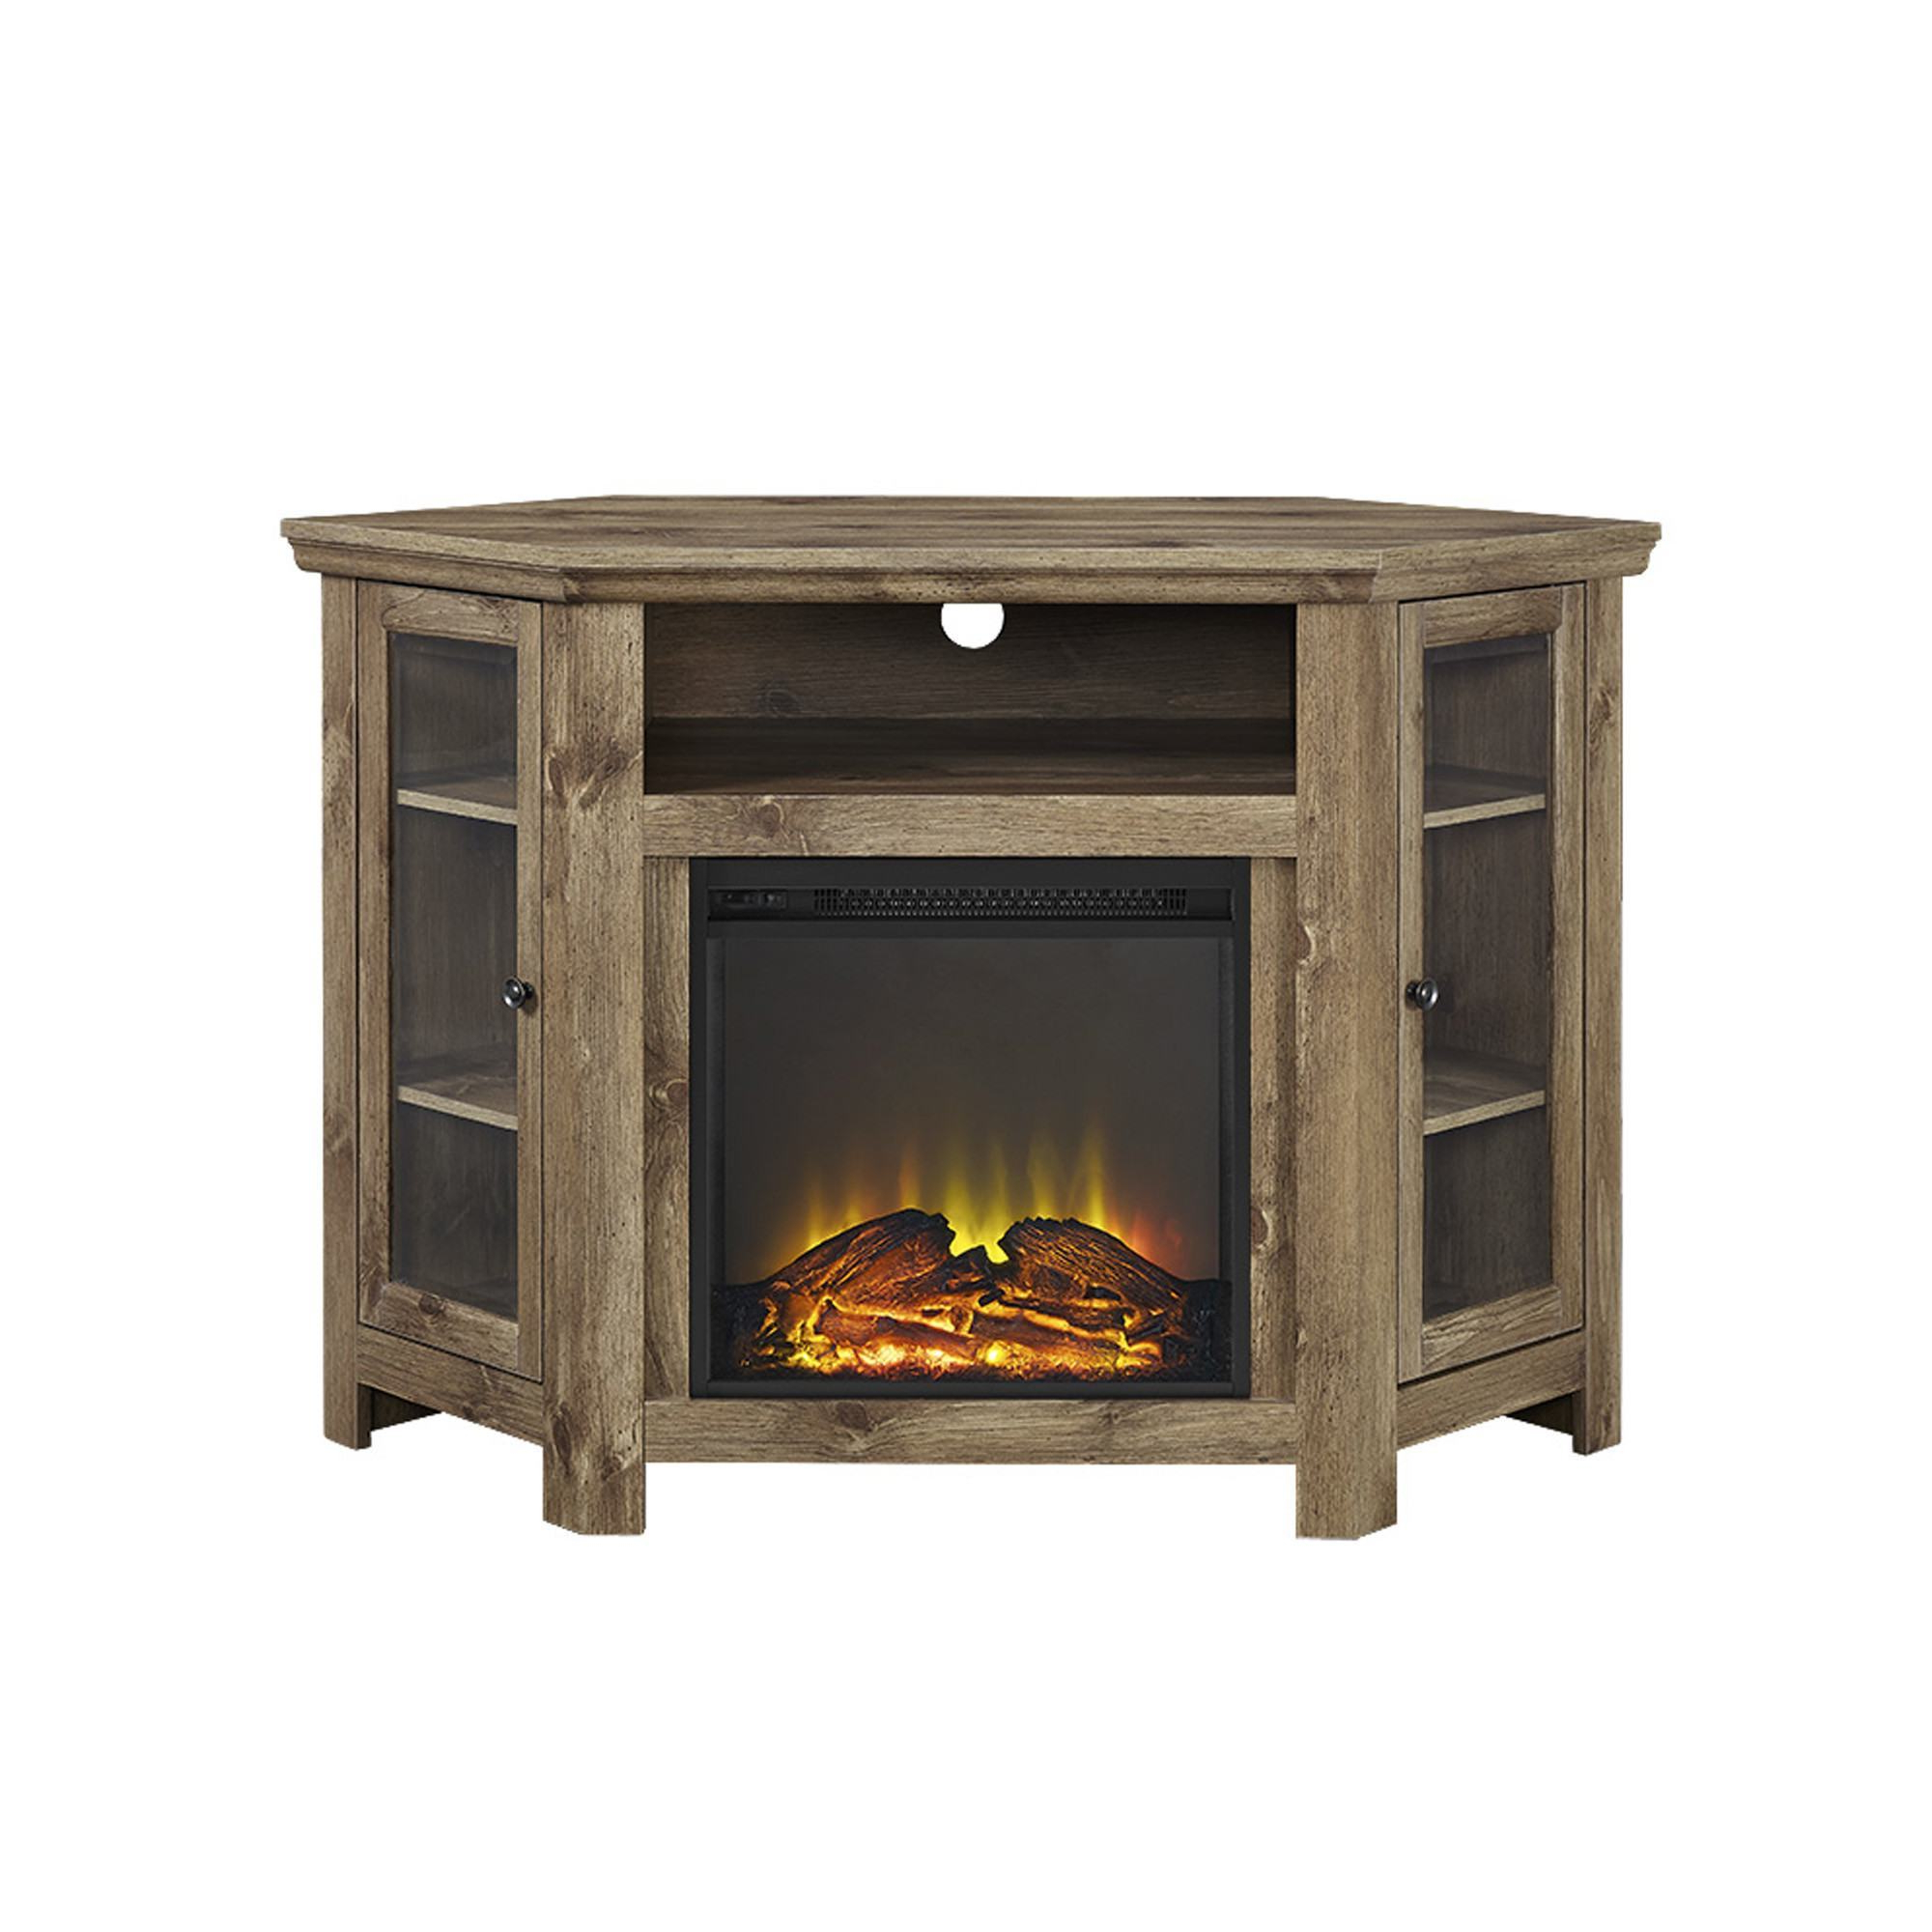 22 Lovely Wayfair Corner Tv Stand For Living Room Interior Decor With Newest Wayfair Corner Tv Stands (View 15 of 20)